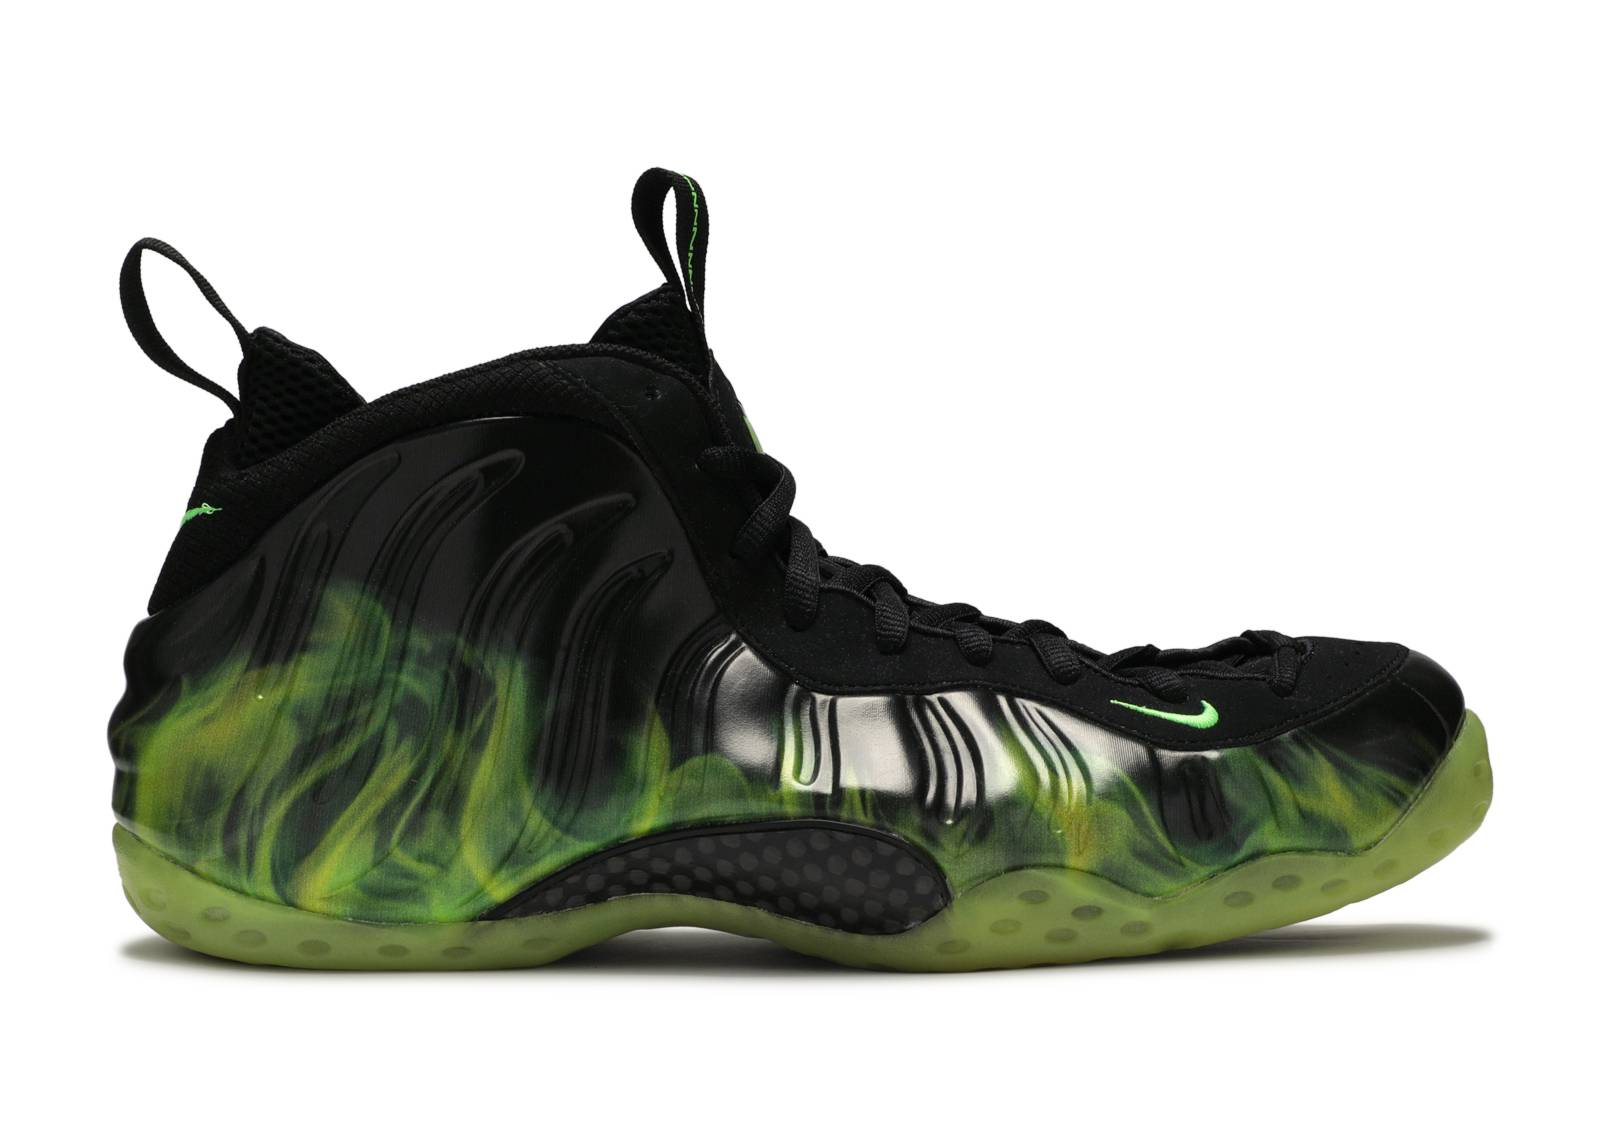 46ee43c0a7e Air Foamposite One Paranorman